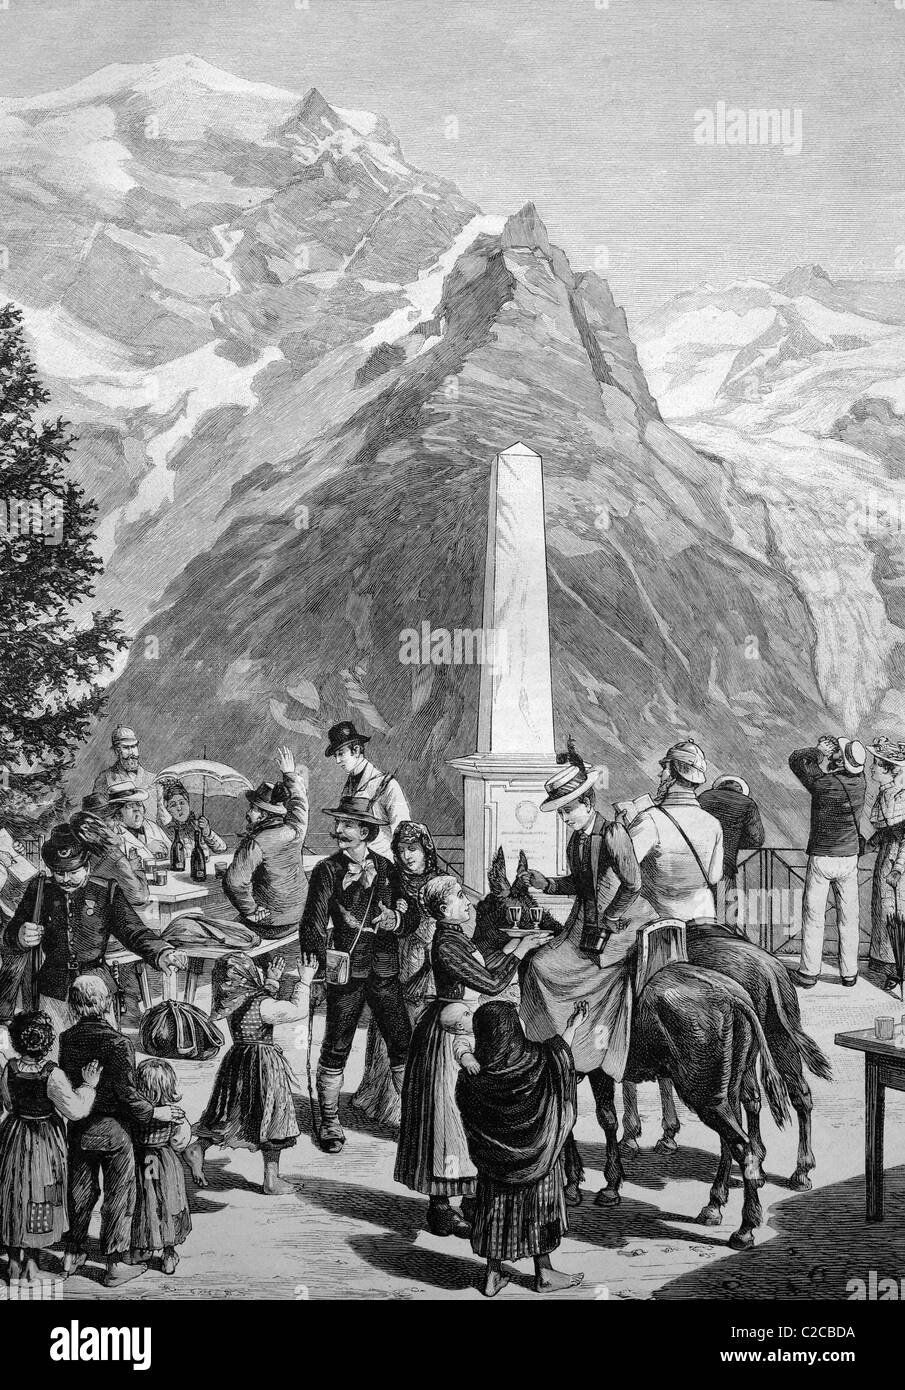 Travellers pausing at the White Knott on the Stelvio Pass, Italy, historical illustration, ca. 1893 - Stock Image